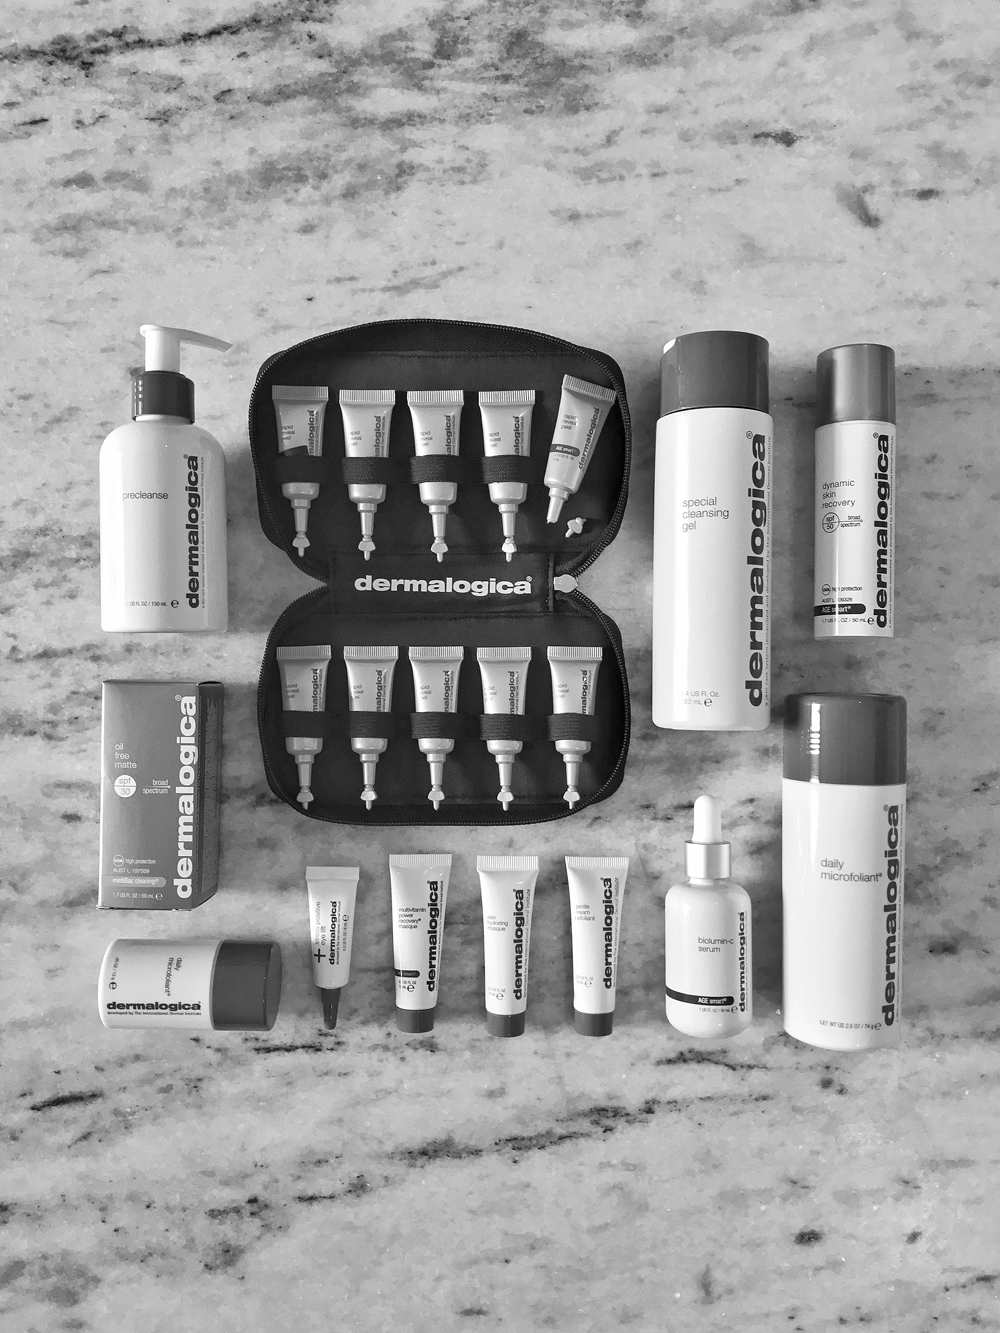 Dermalogica Skinfluencer full skincare regime - luxury beauty blog